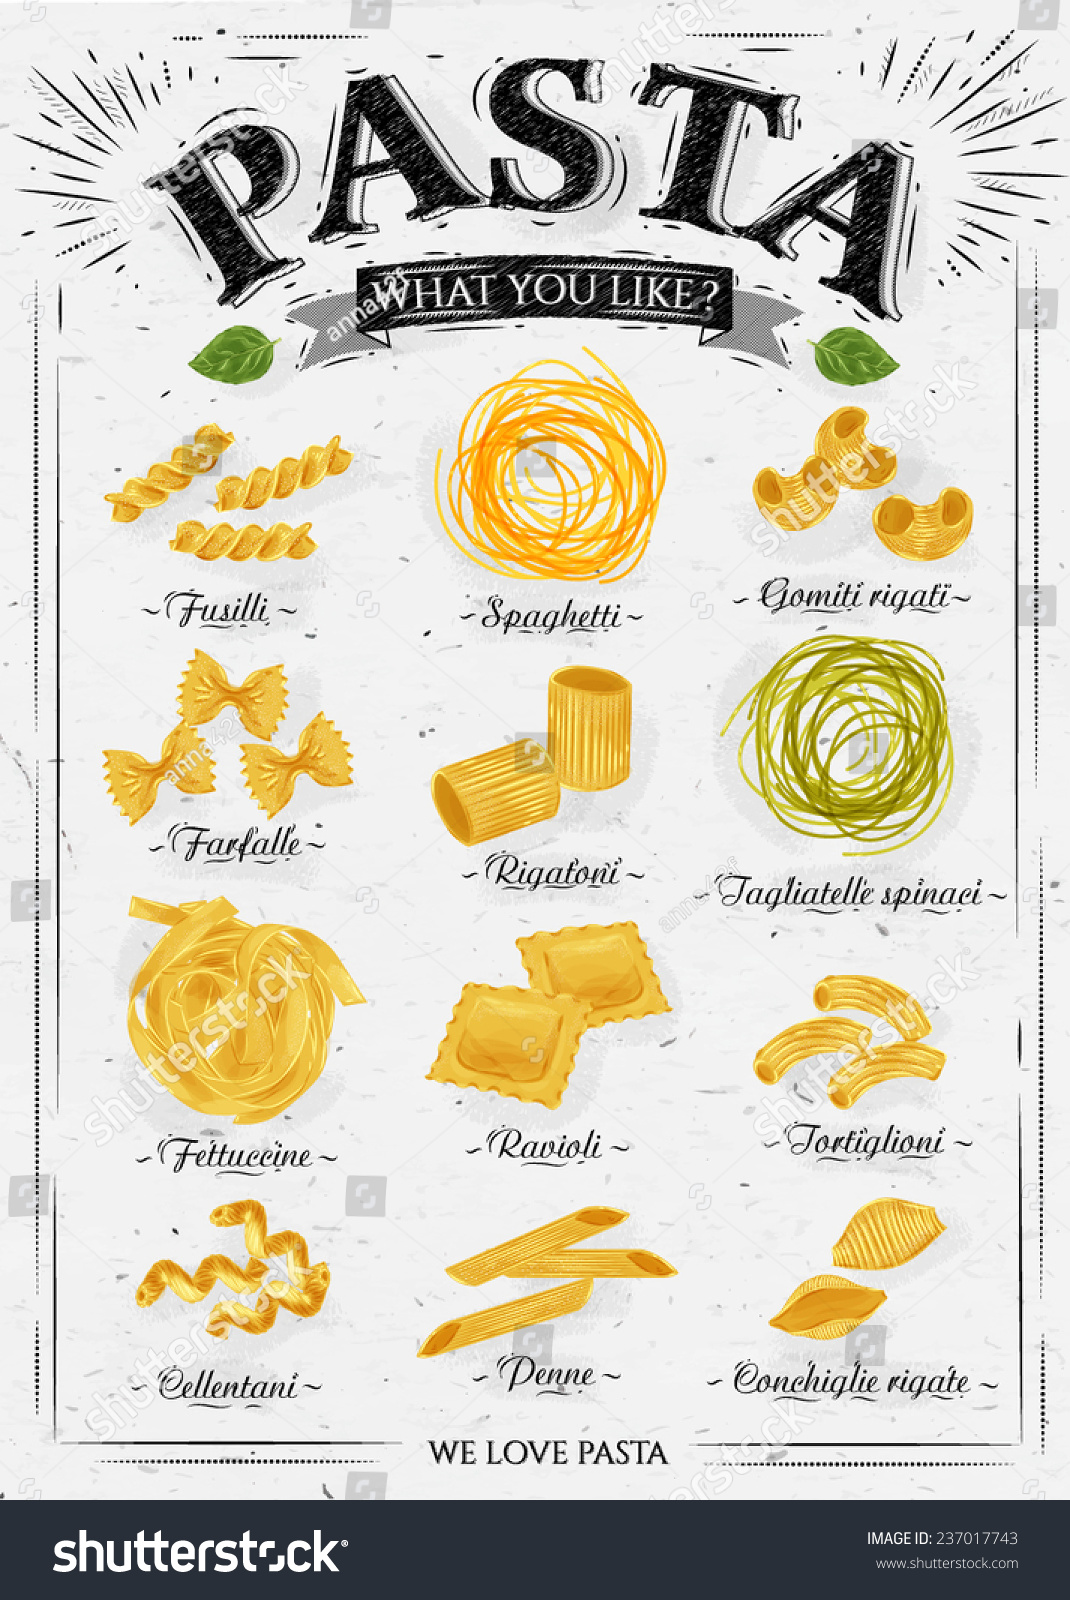 Poster Set Pasta Different Types Pasta Stock Vector 237017743 ...